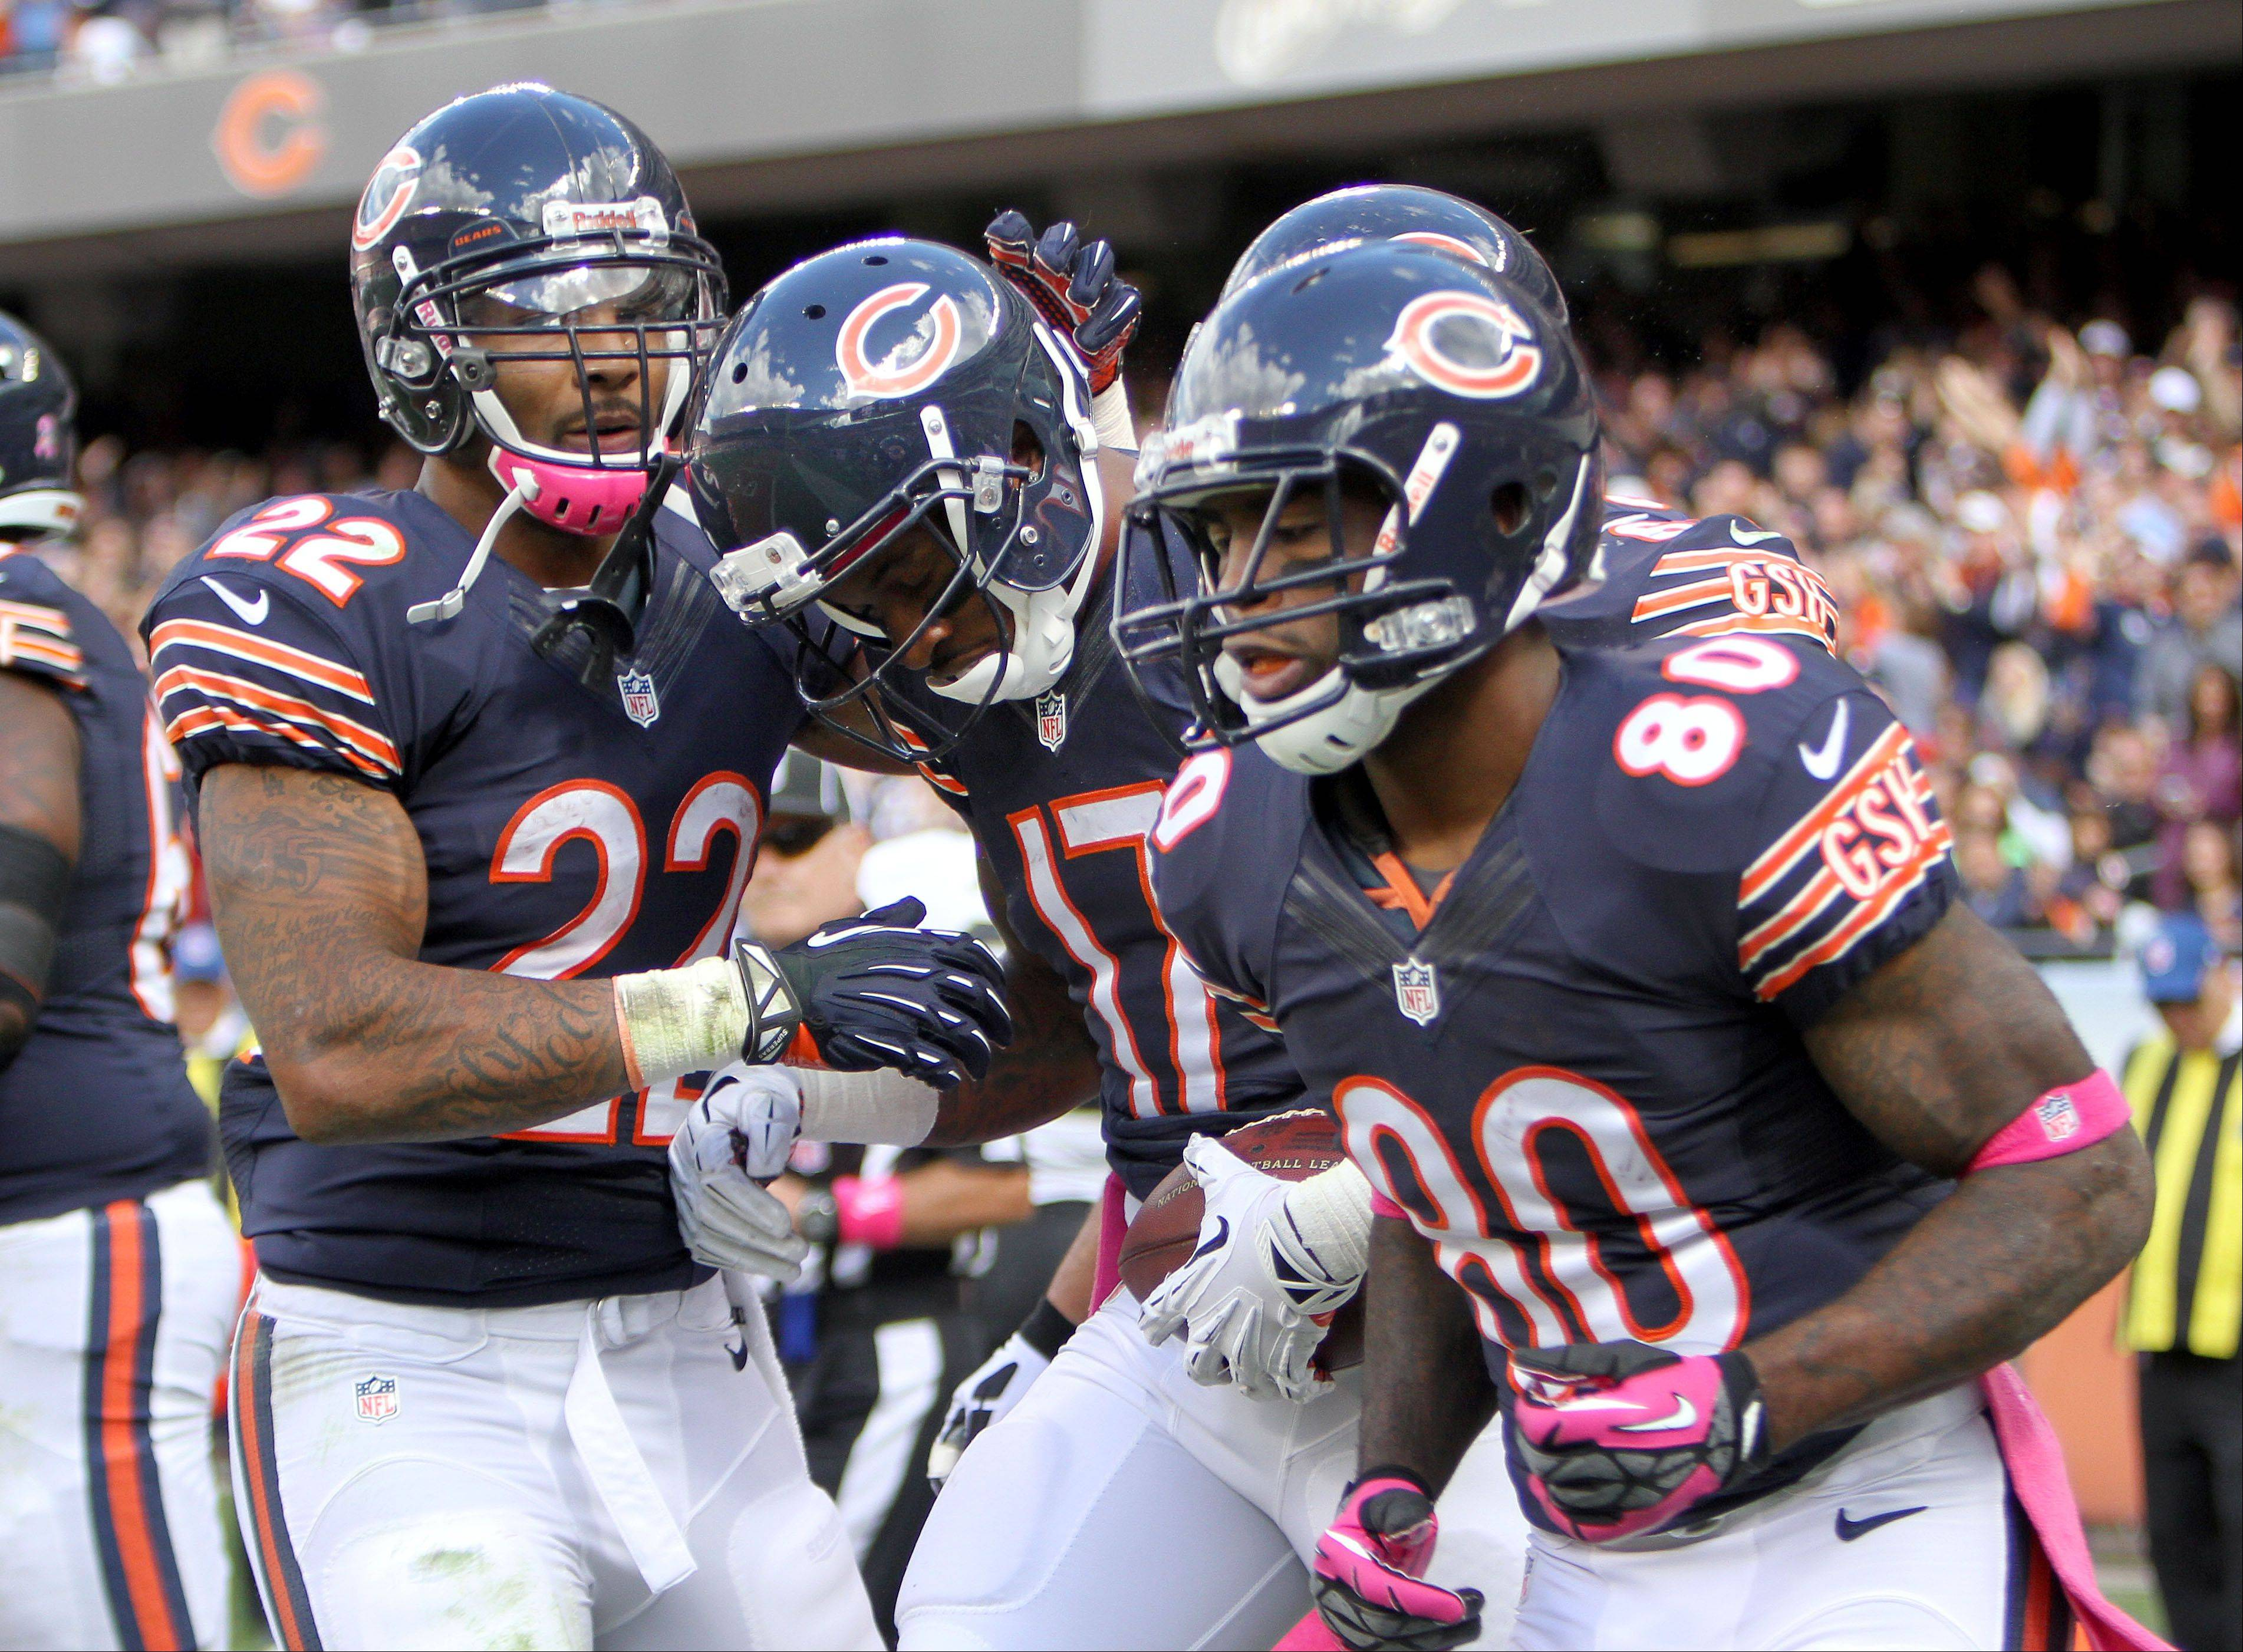 Chicago Bears wide receiver Alshon Jeffery is congratulated by teammates after his 3rd quarter touchdown.